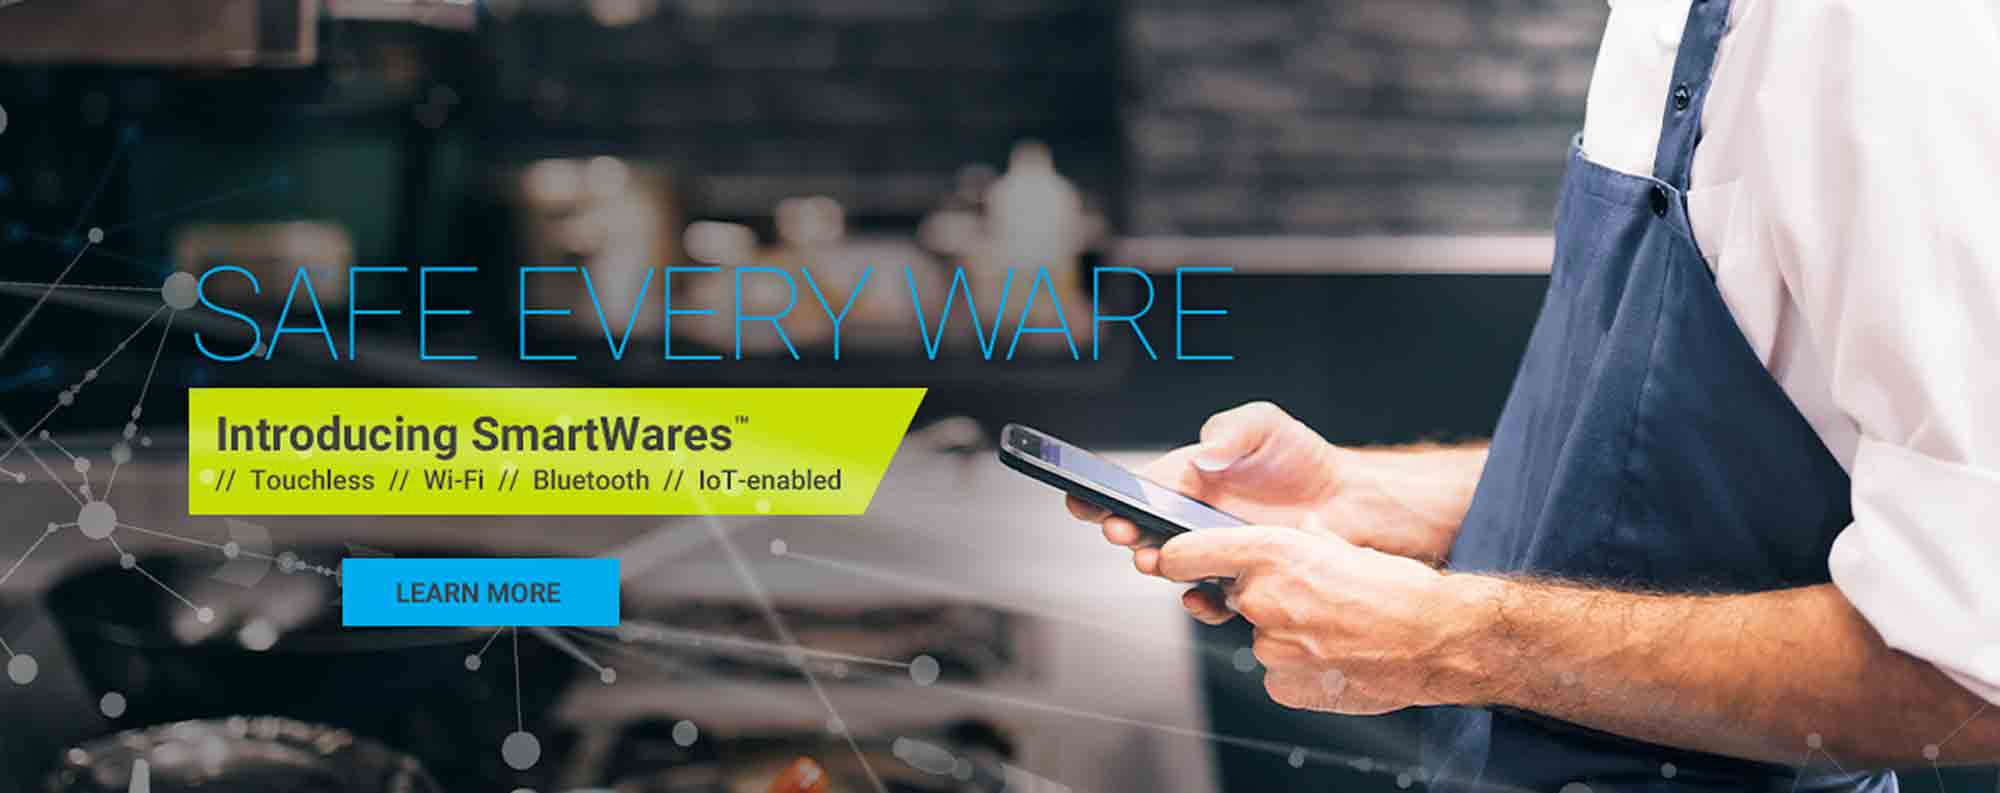 Intelligent by Design > Server SmartWares